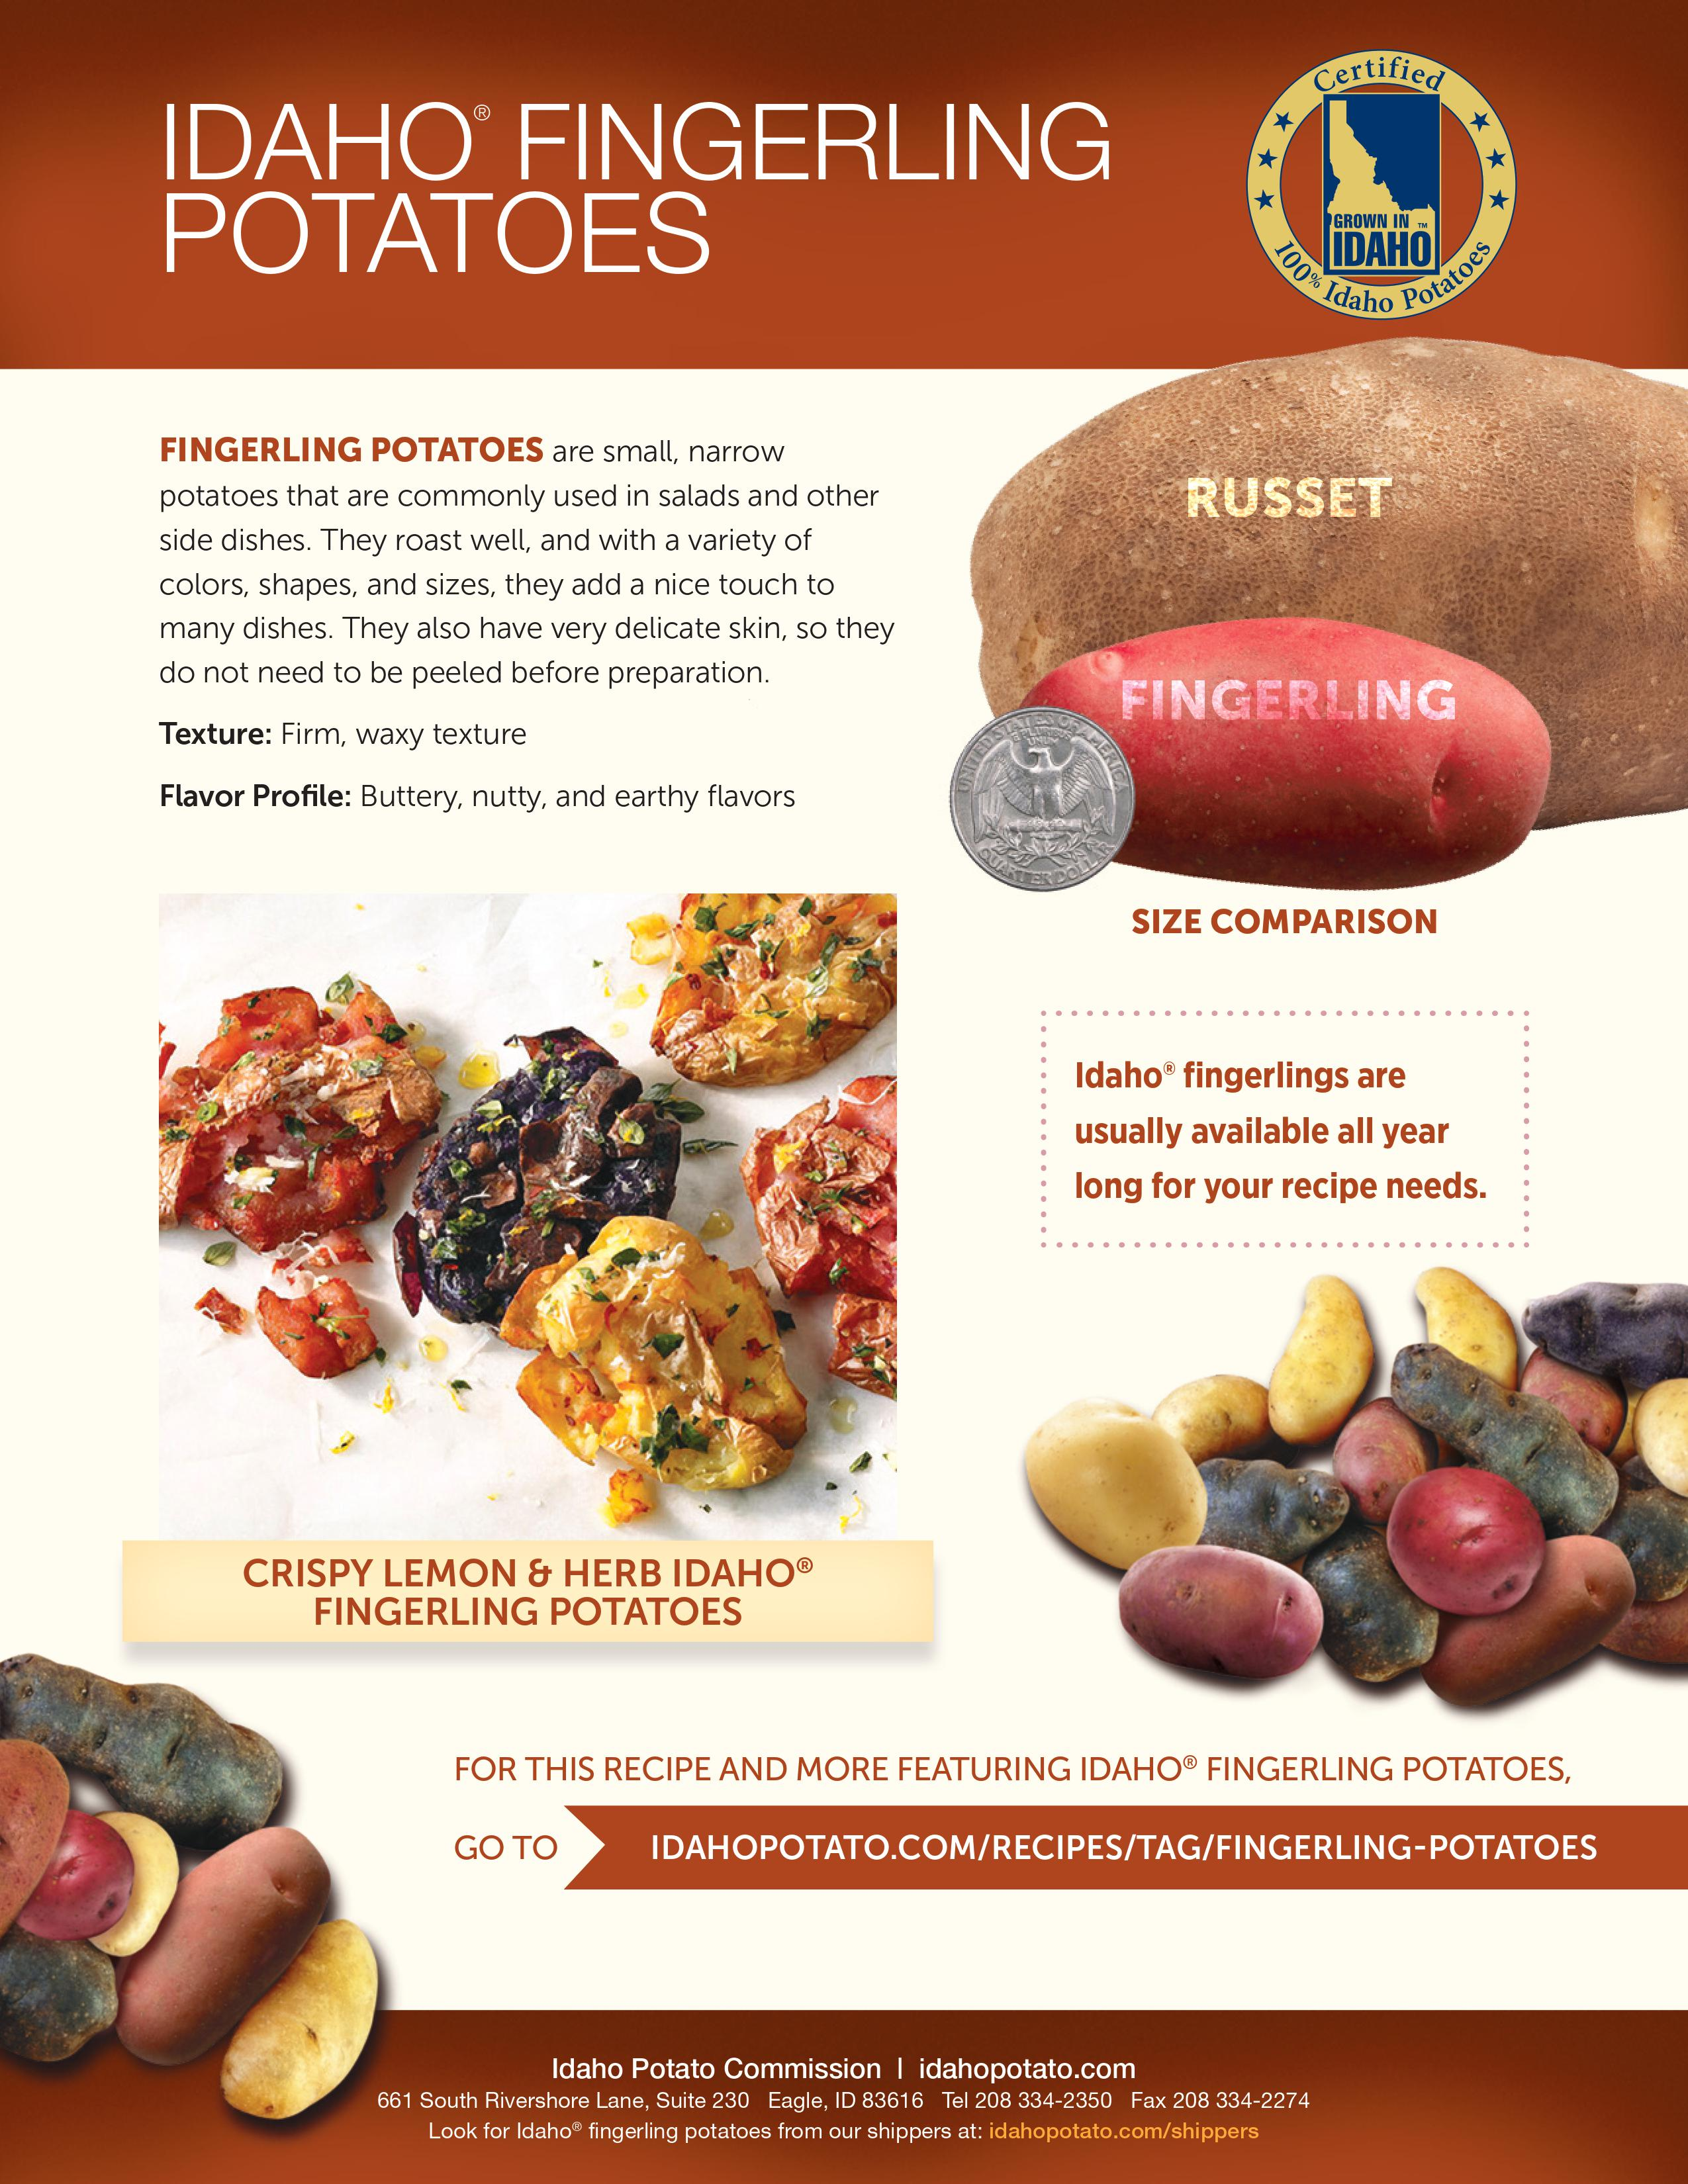 Idaho® Fingerling Potatoes